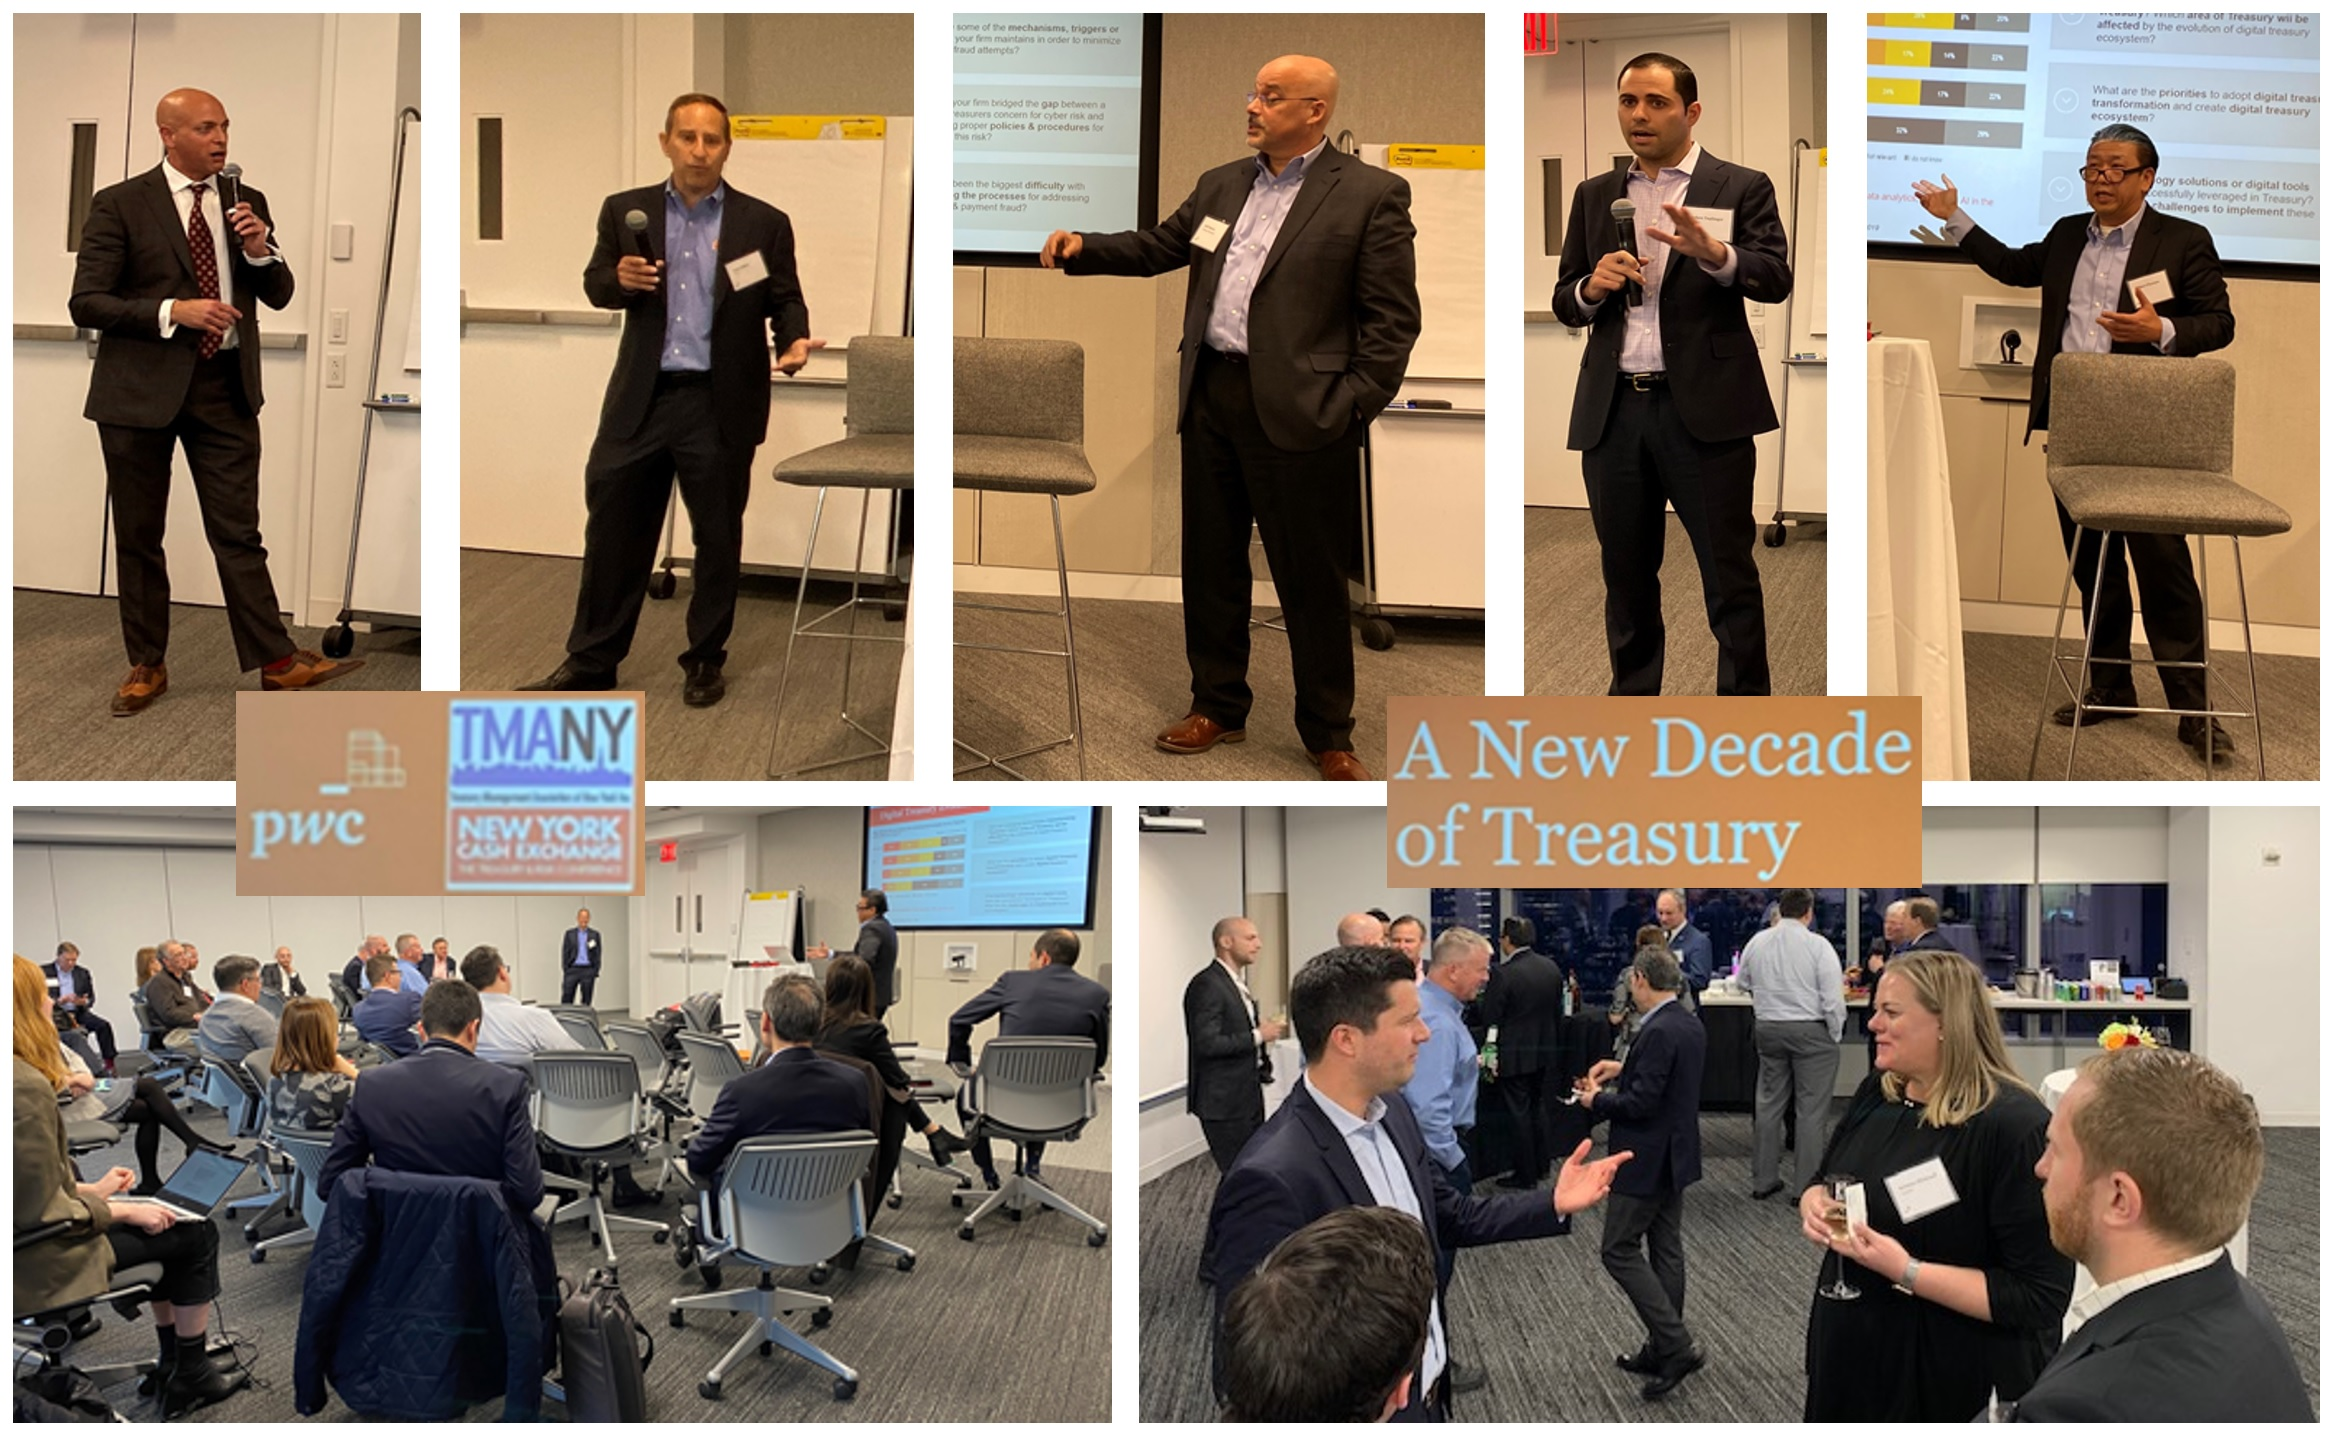 tmany-pwc-exec-event-march-2020